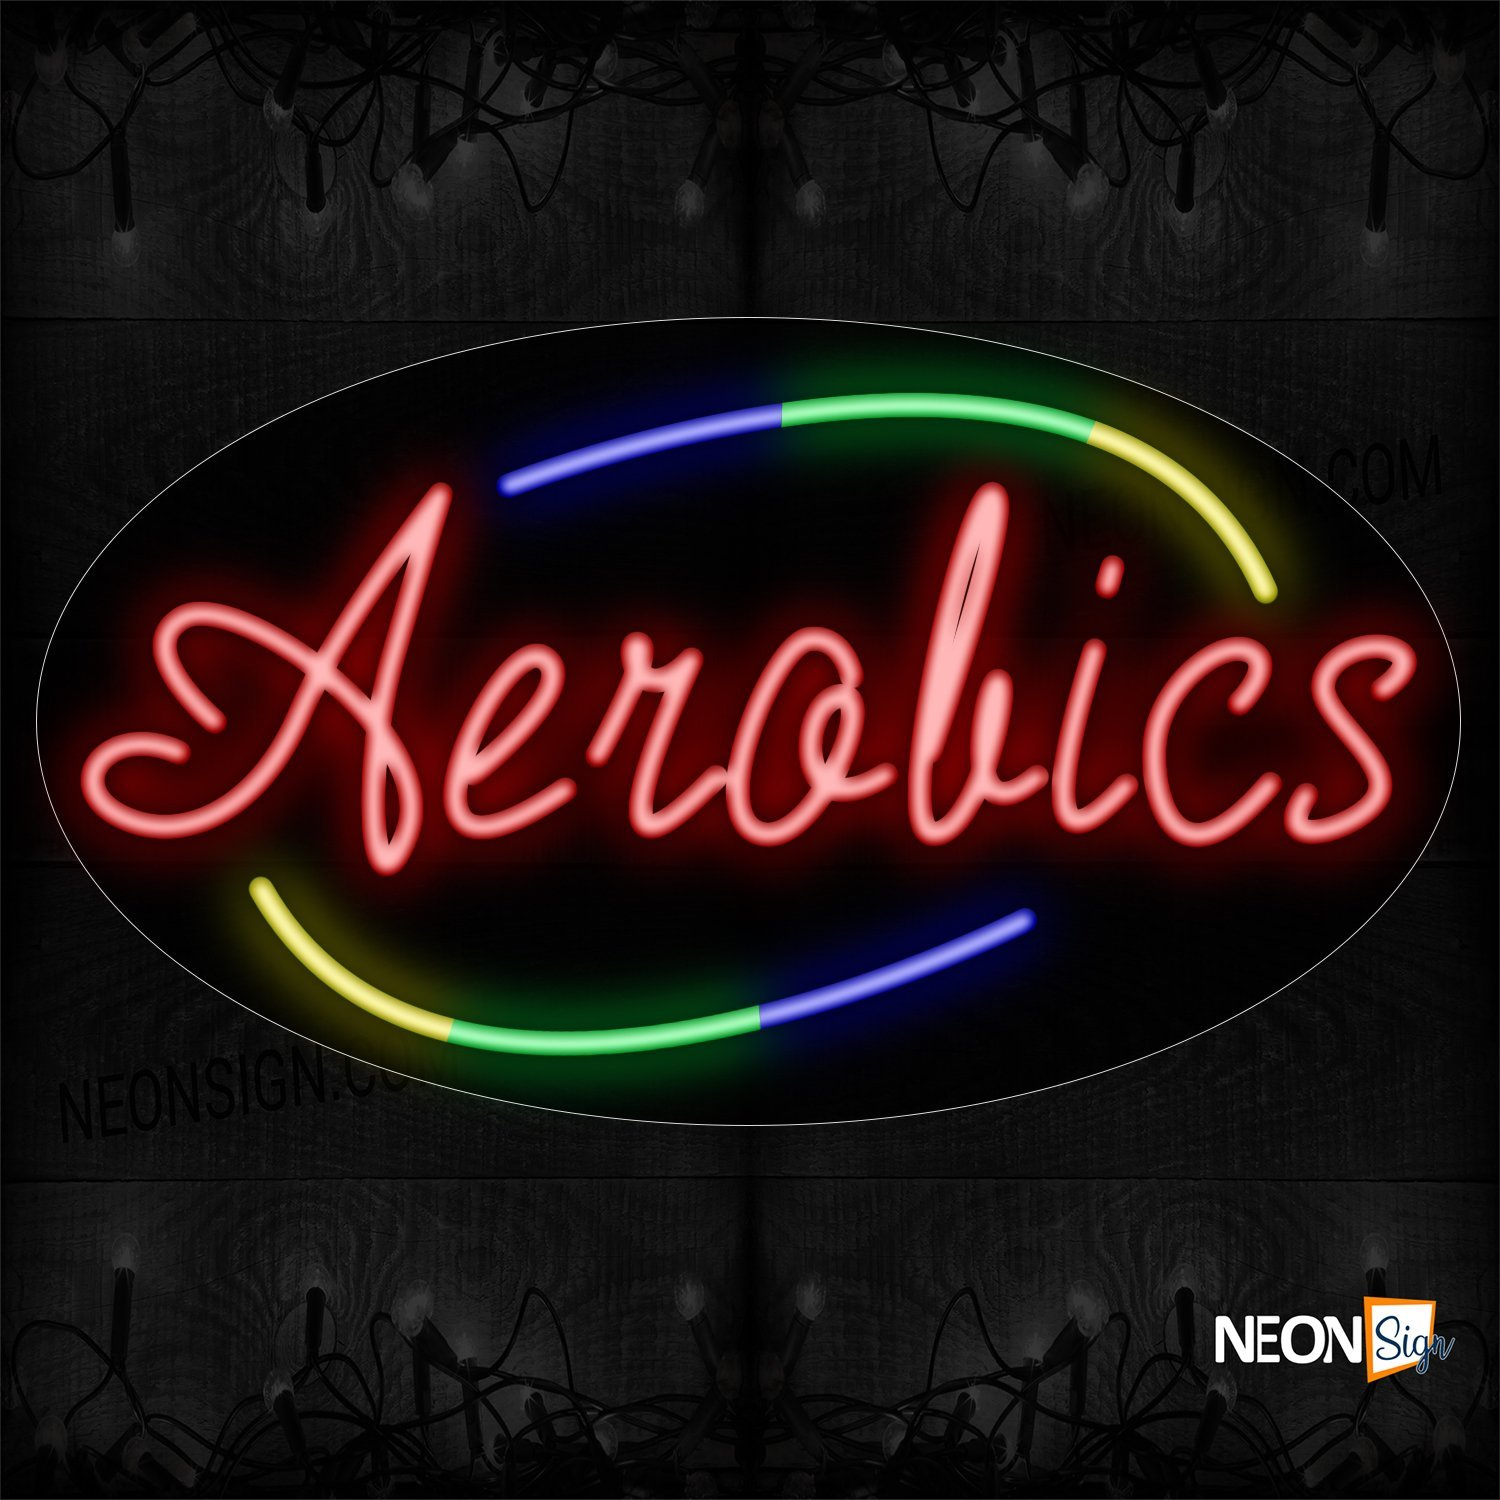 Image of 14494 Aerobics In Red With Colorful Arc Border Neon Sign_17x30 Contoured Black Backing